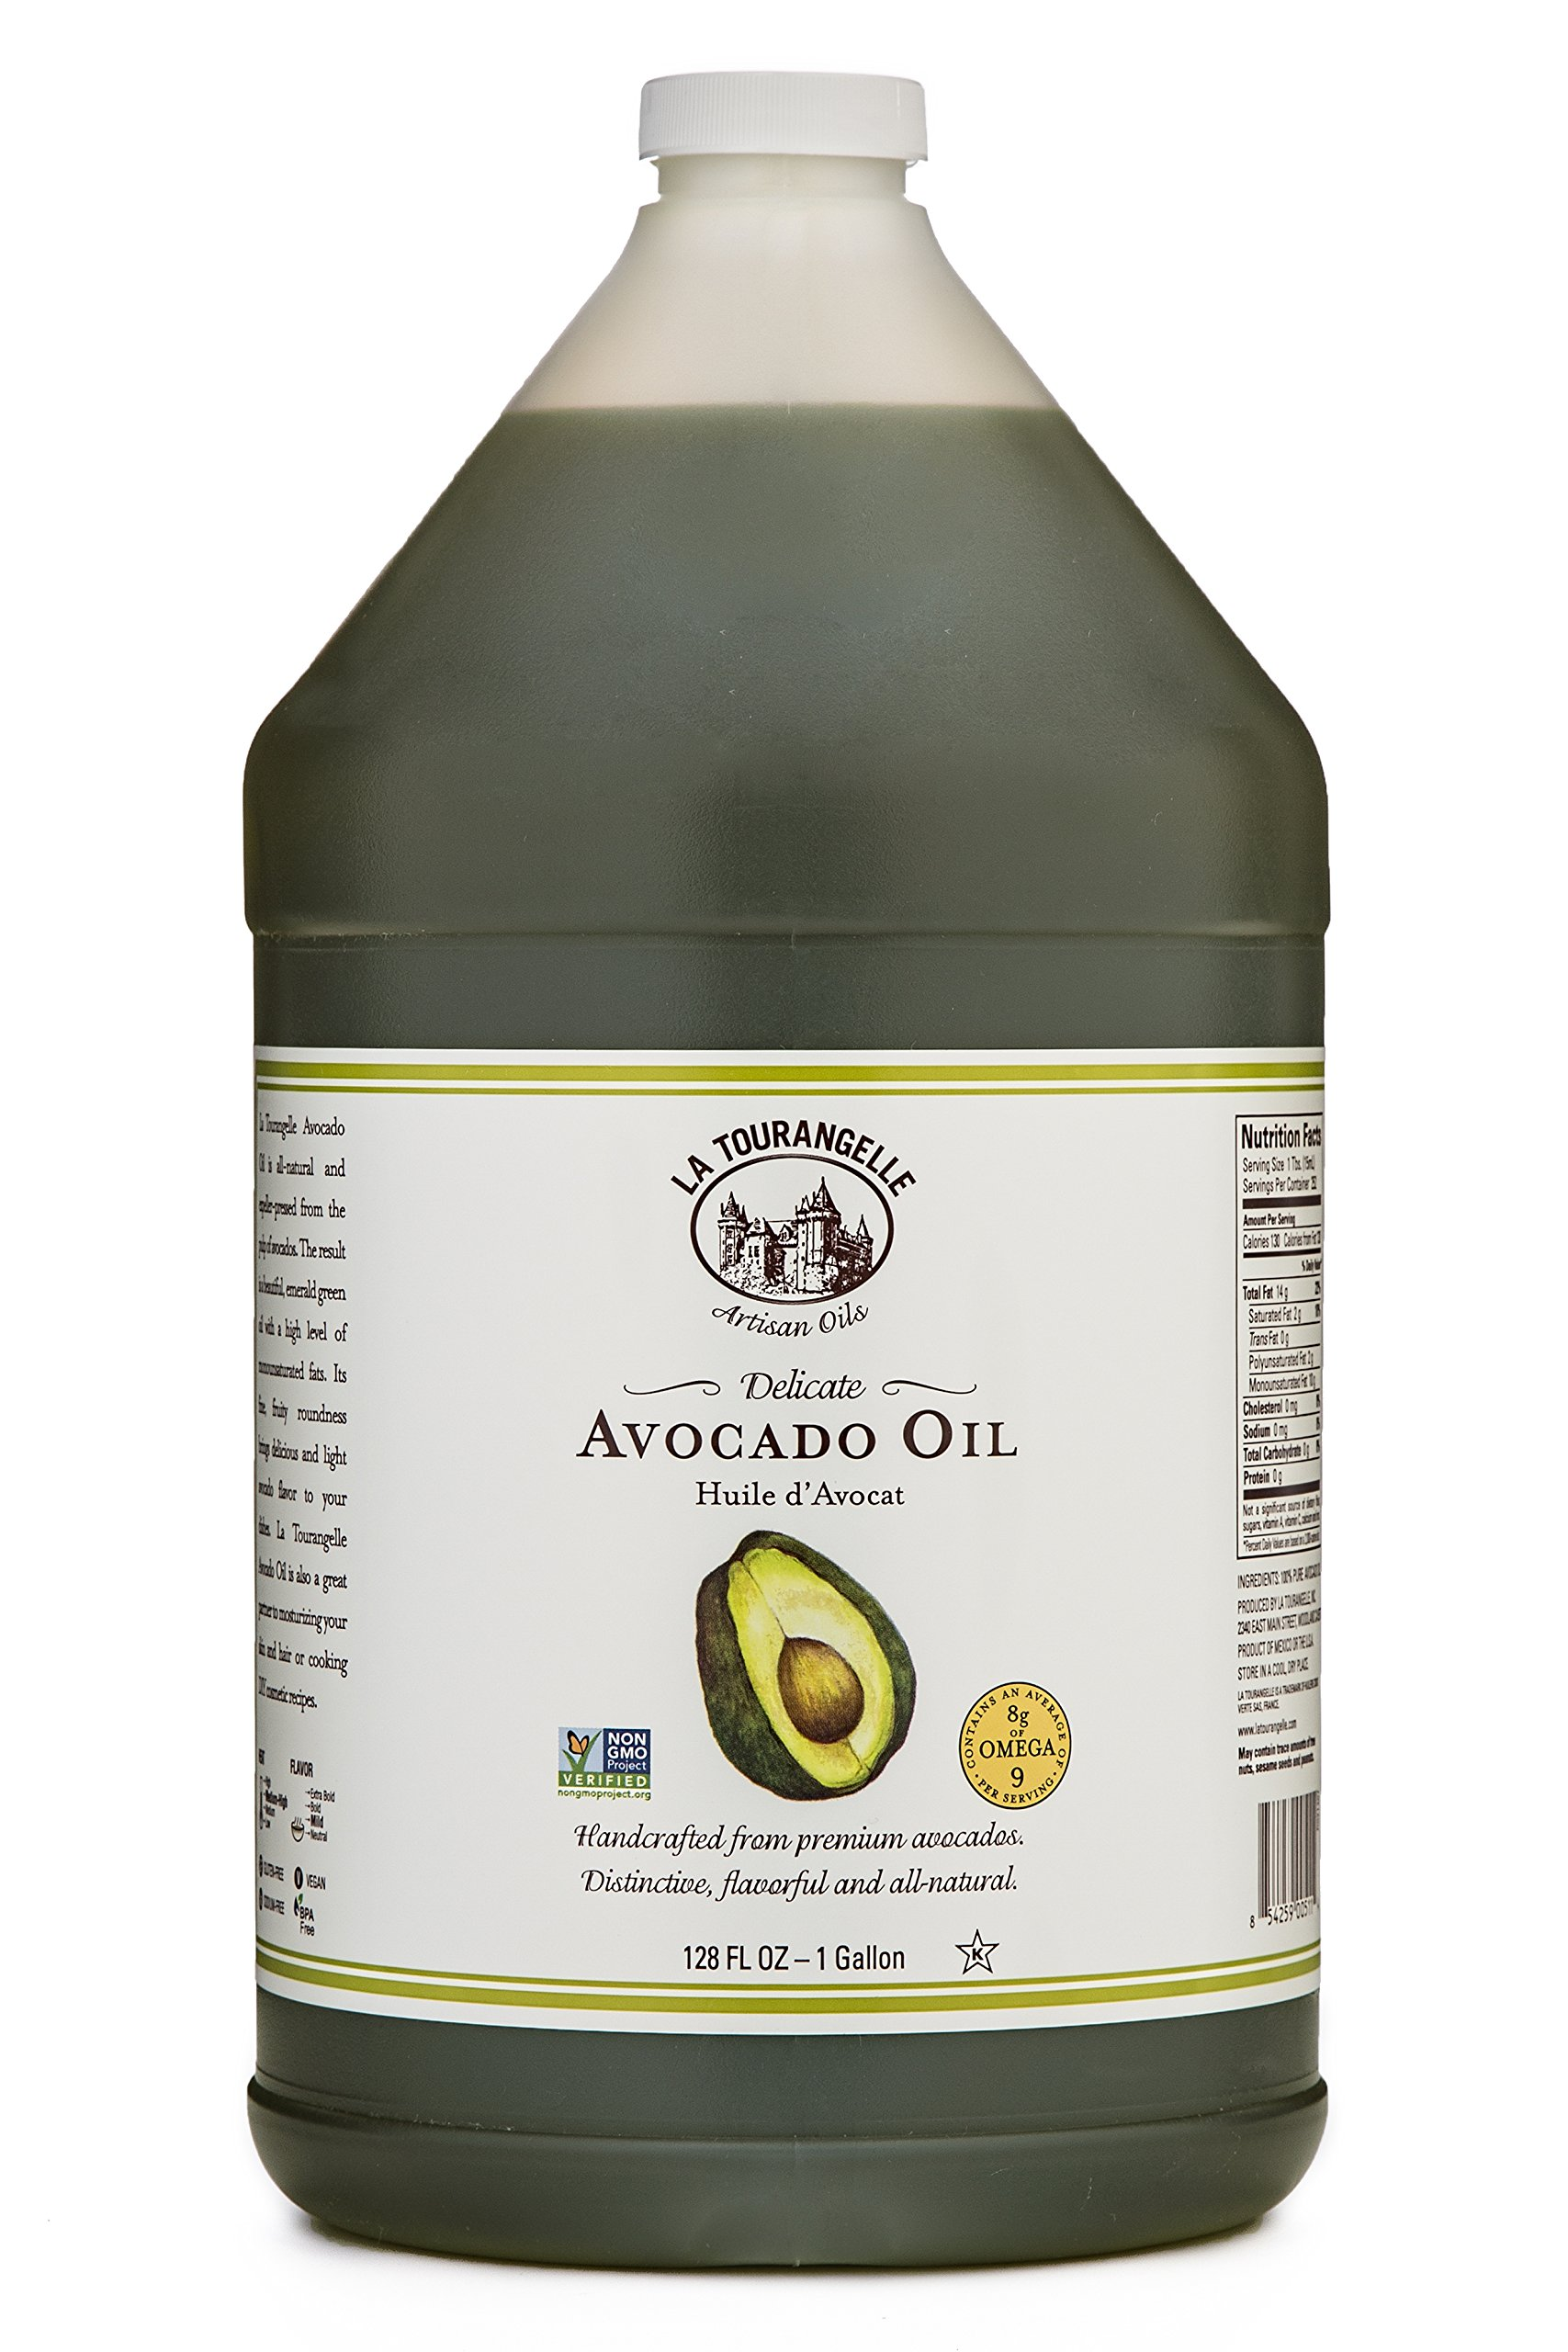 La Tourangelle Avocado Oil 128 Fl. Oz., All-Natural, Artisanal, Great for Salads, Fruit, Fish or Vegetables, Great Buttery Flavor